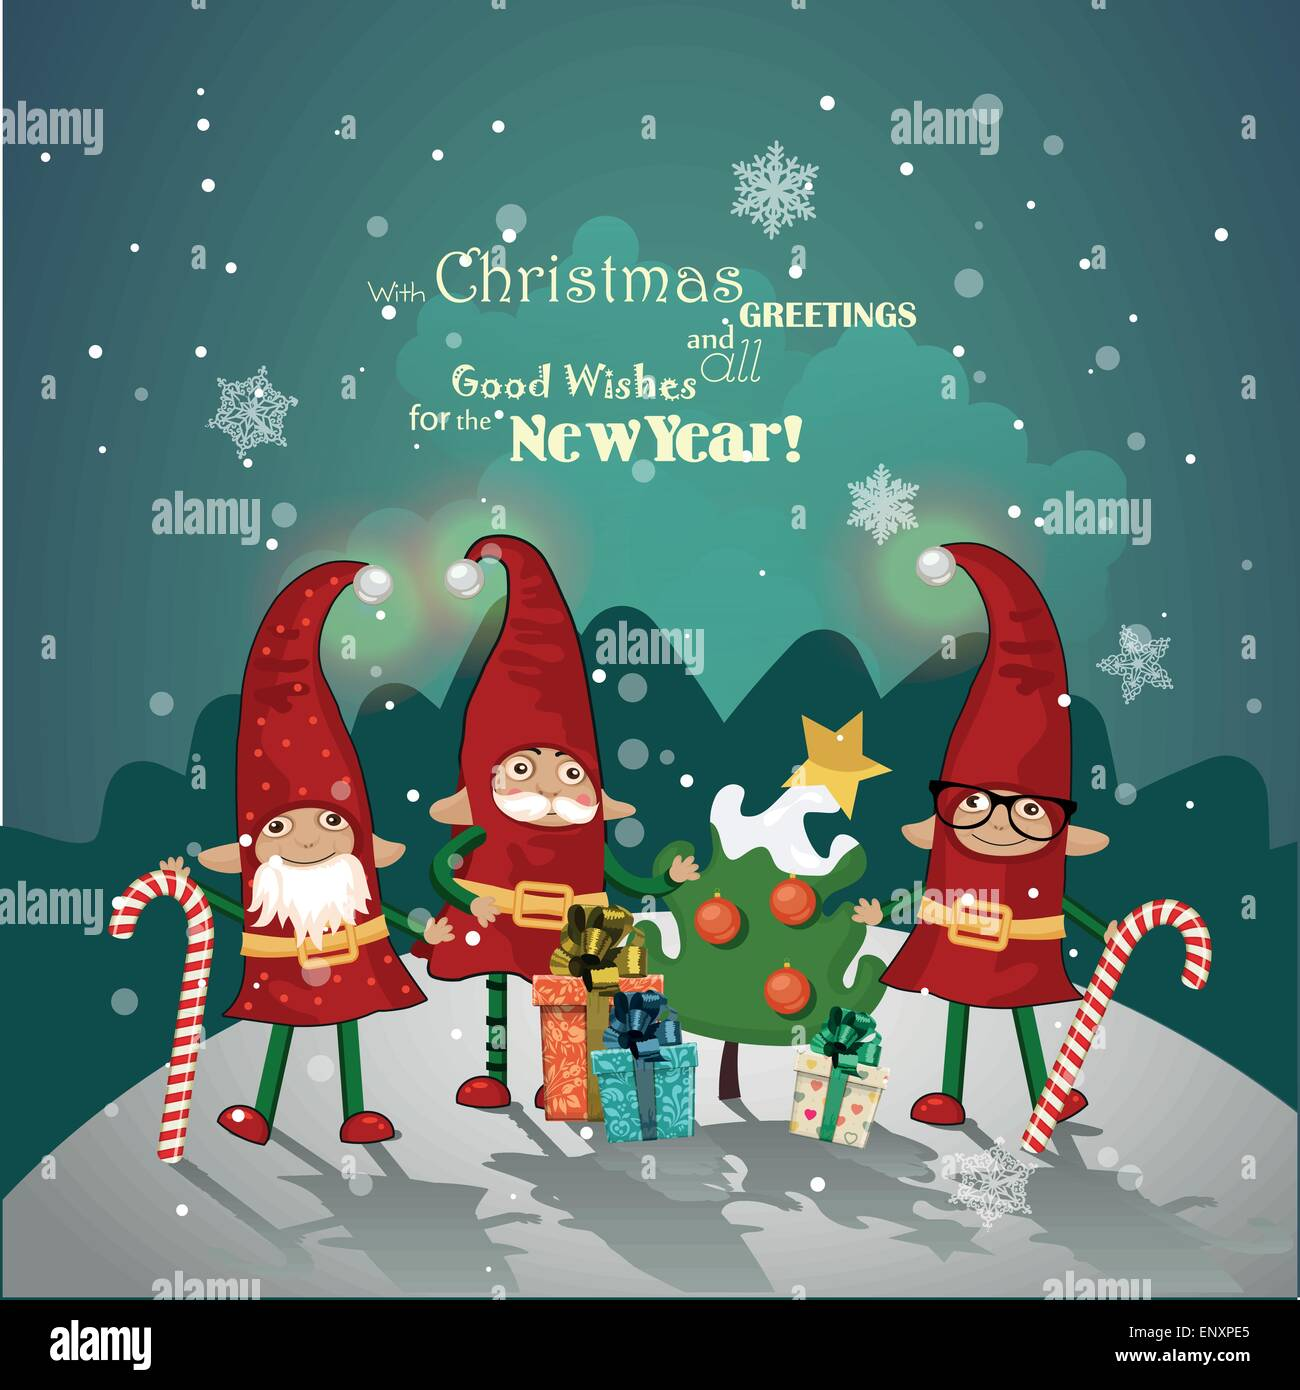 Vintage Christmas Poster Design With Christmas Elves Vector Stock